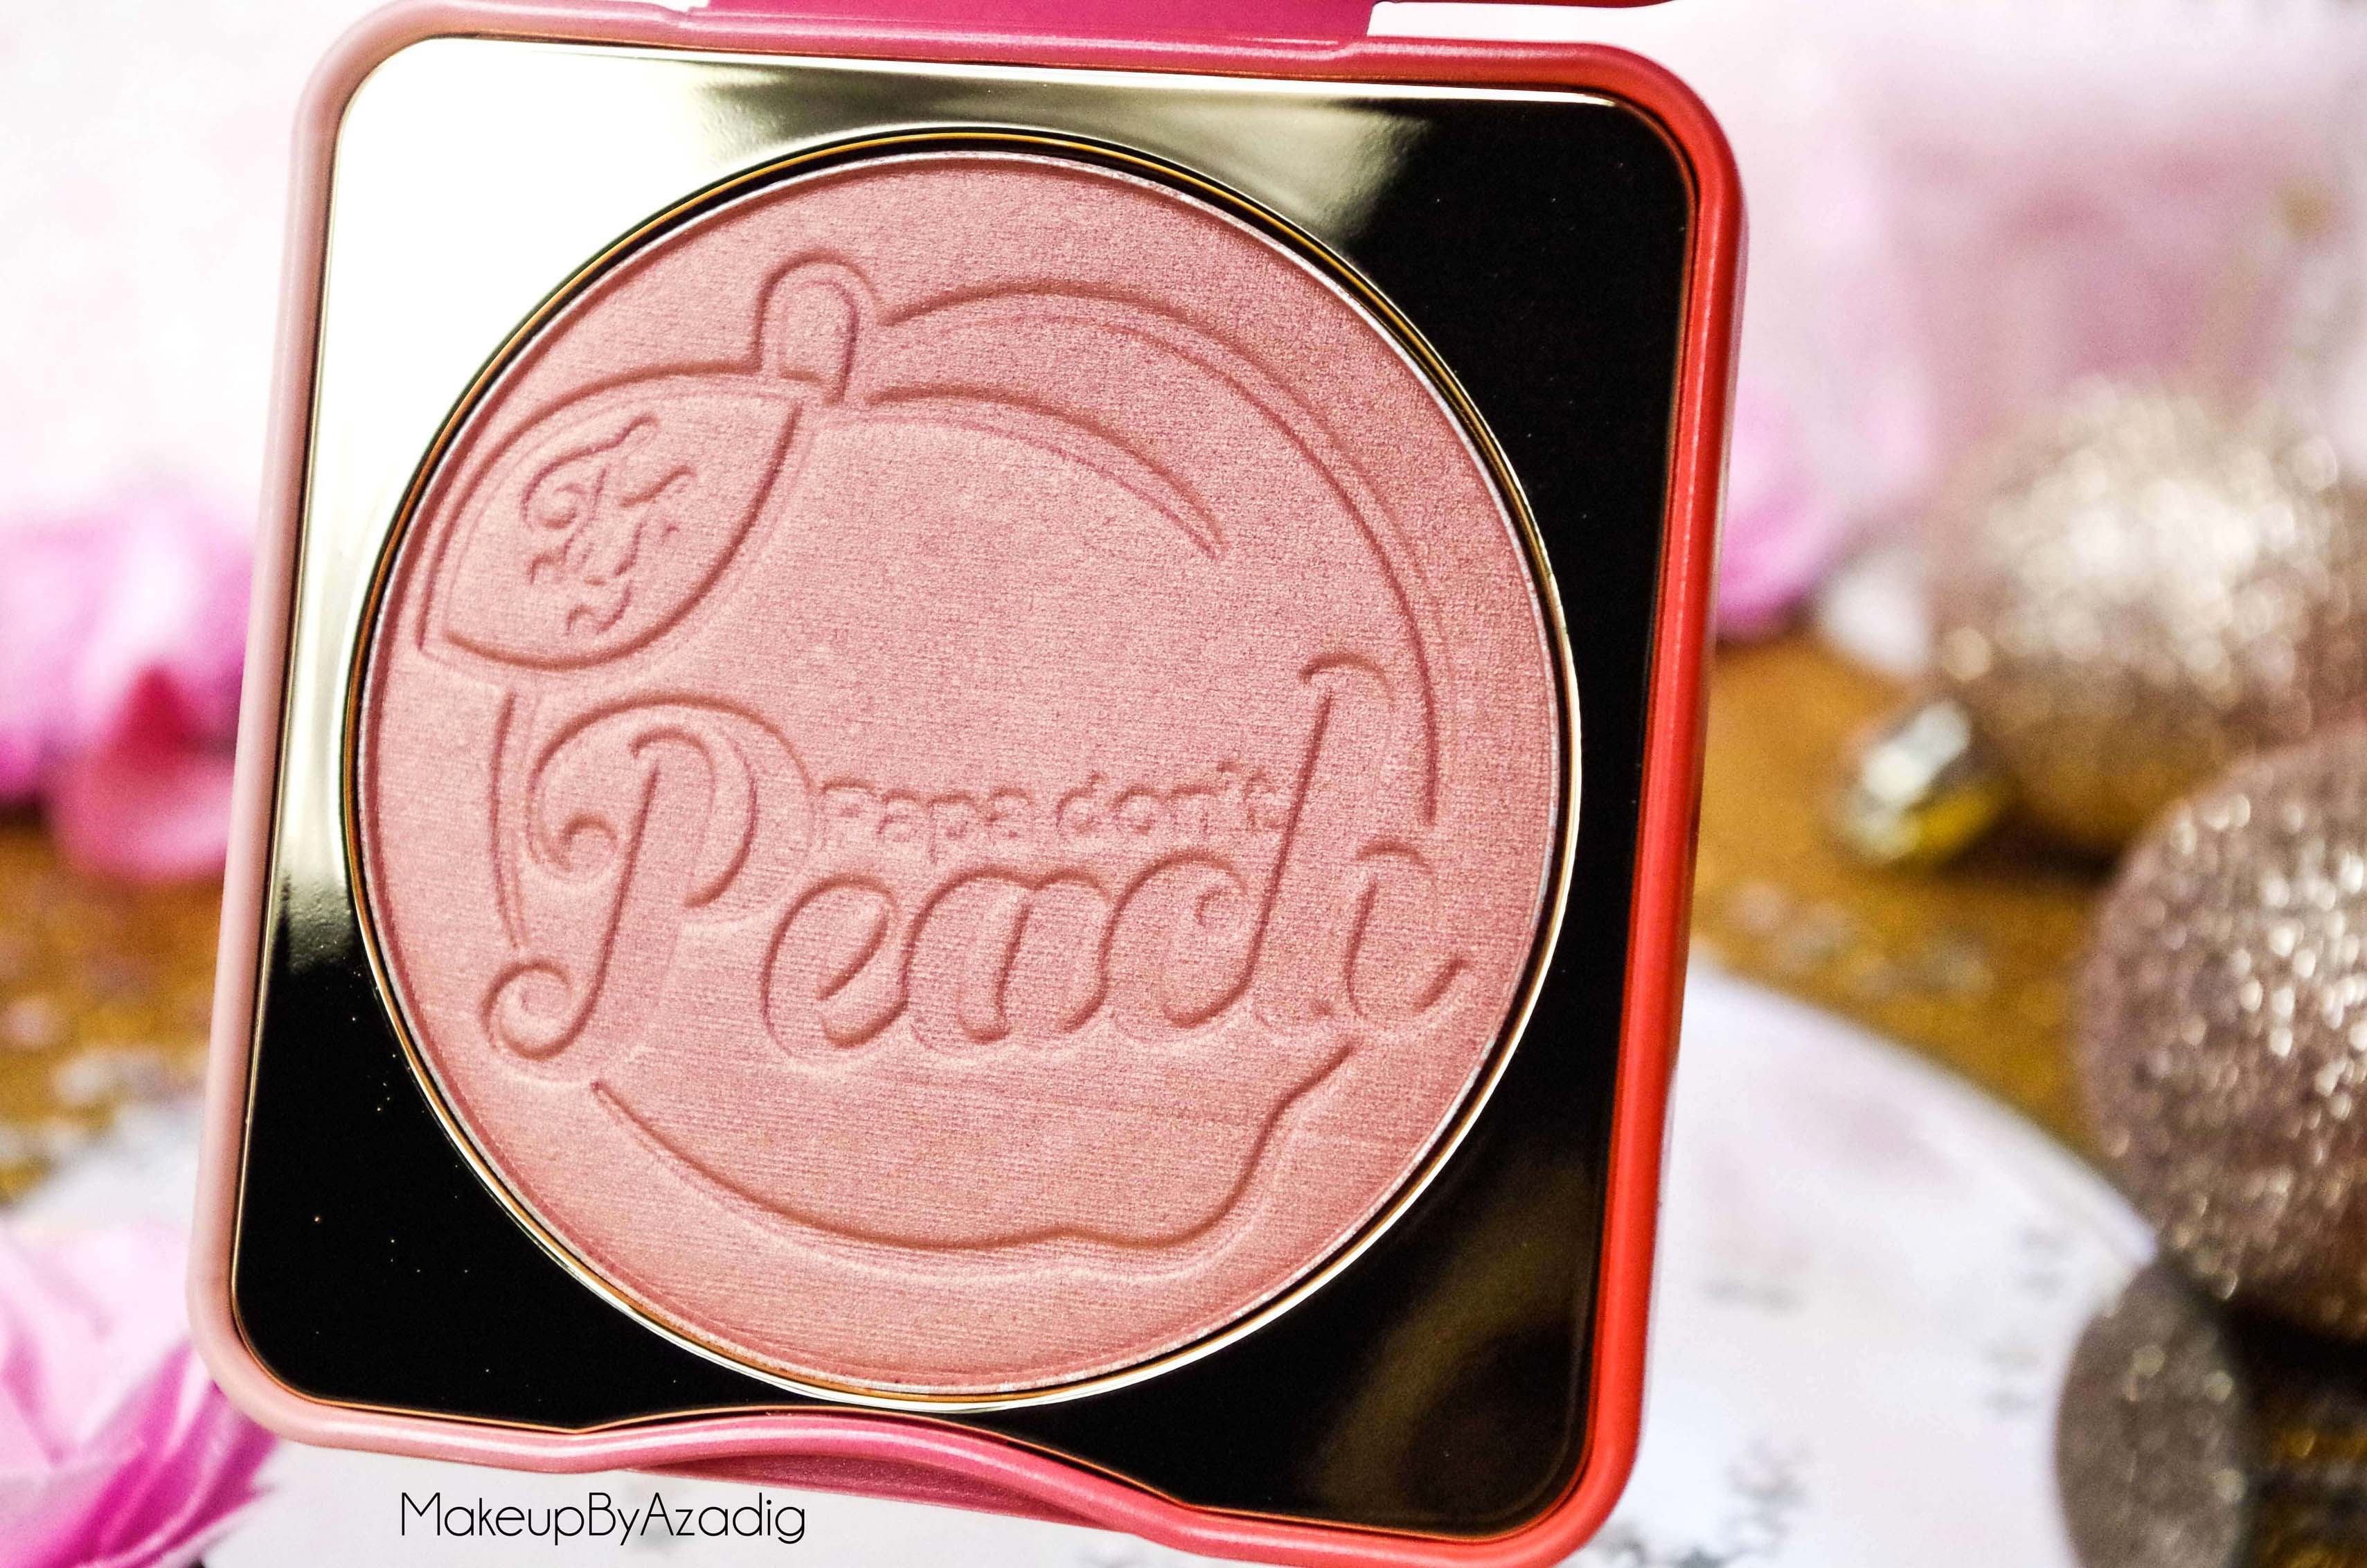 review-nouveau-blush-papa-dont-peach-too-faced-sephora-ete-printemps-paris-sweet-peach-swatch-avis-makeupbyazadig-amazing-2